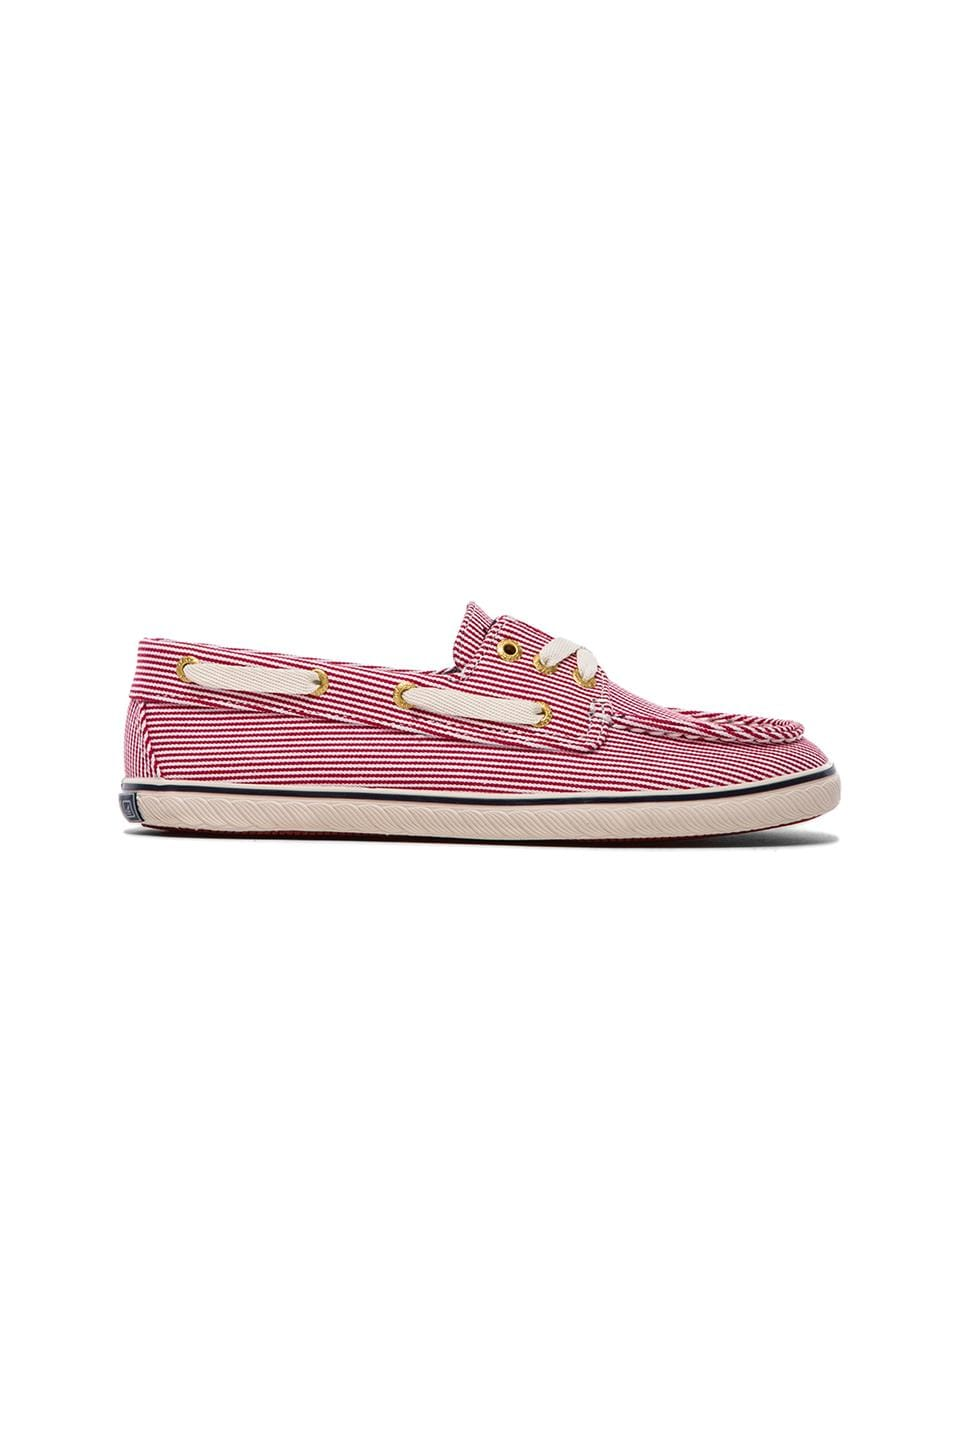 Sperry Top-Sider Cruiser in Red & Ivory